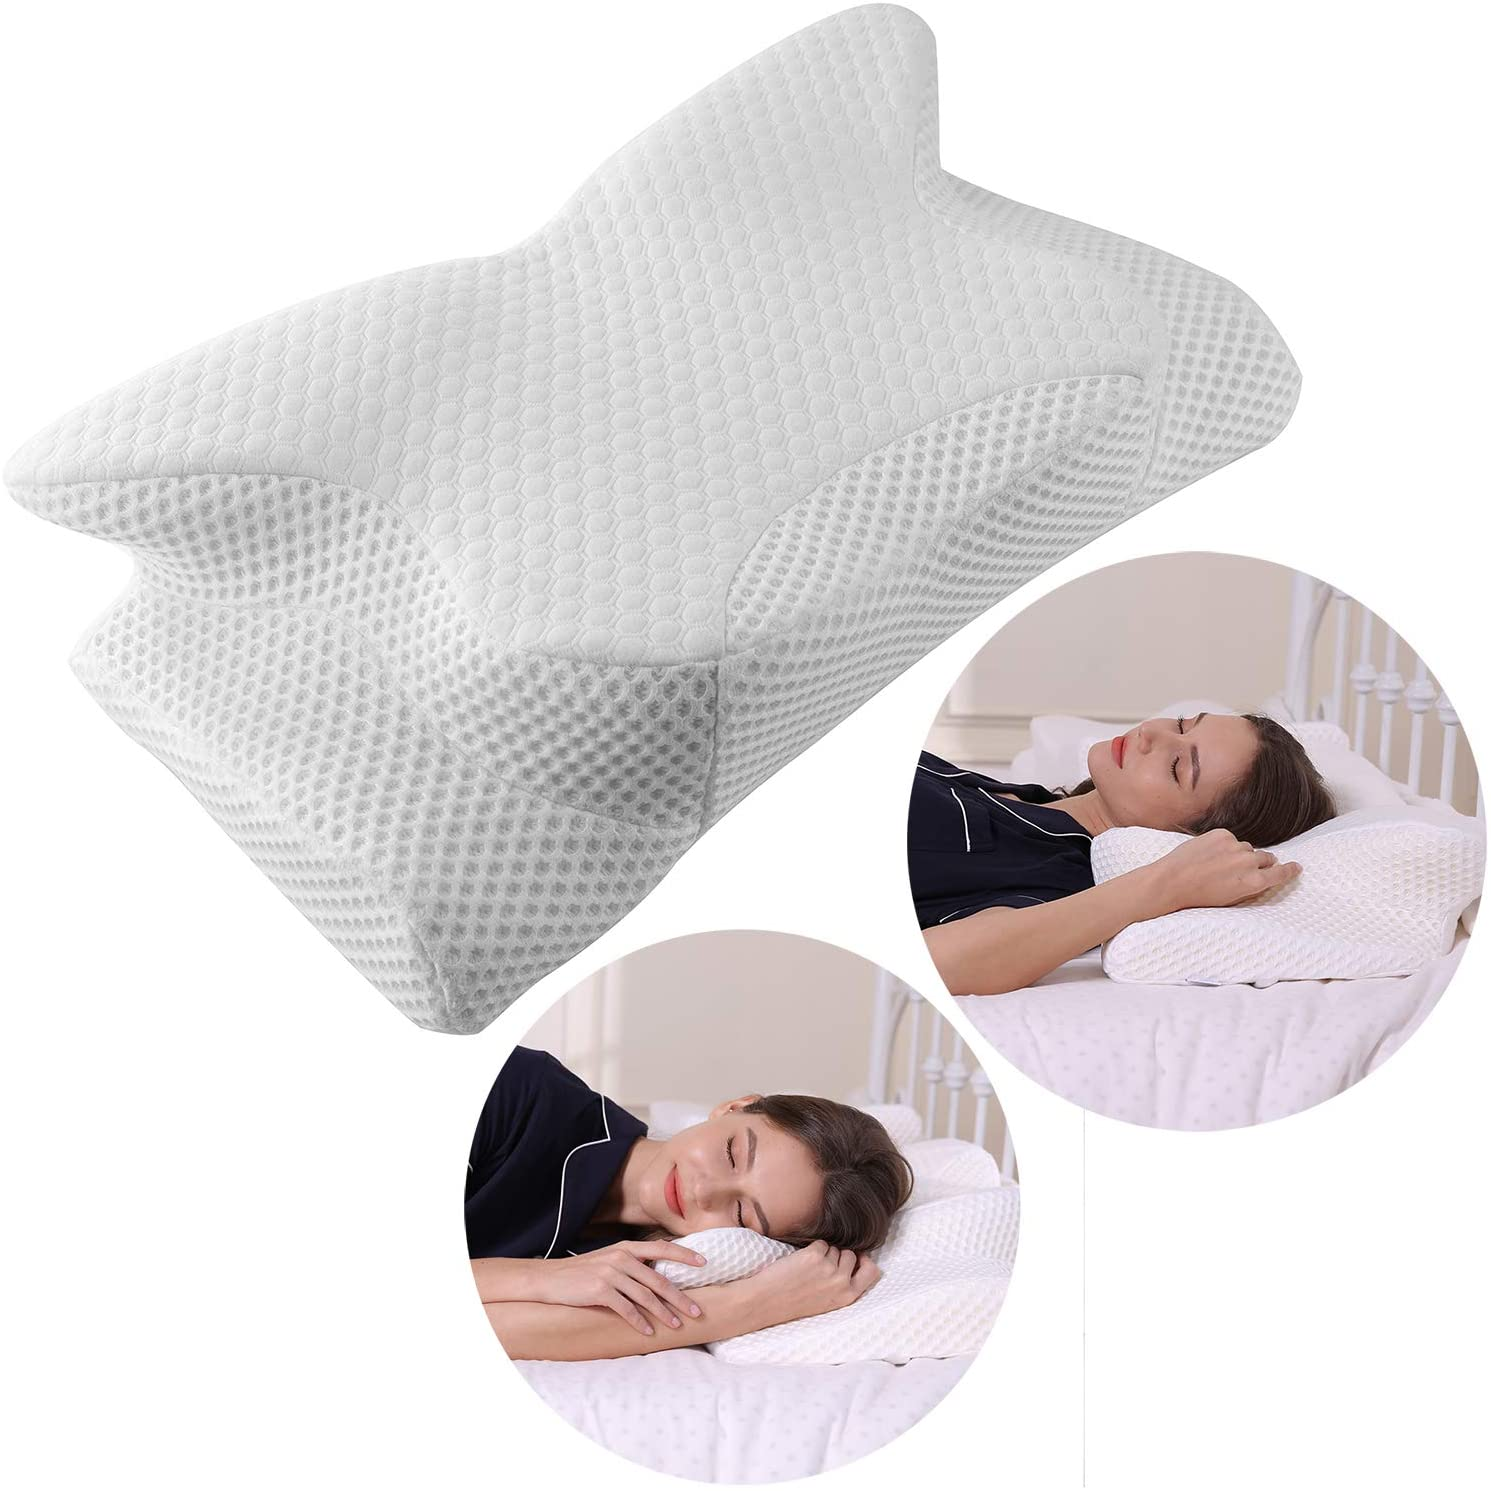 A Cervical Lordosis Pillow is about more than just luxury and comfort, they are also about alignment and support, allowing you to sleep soundly.